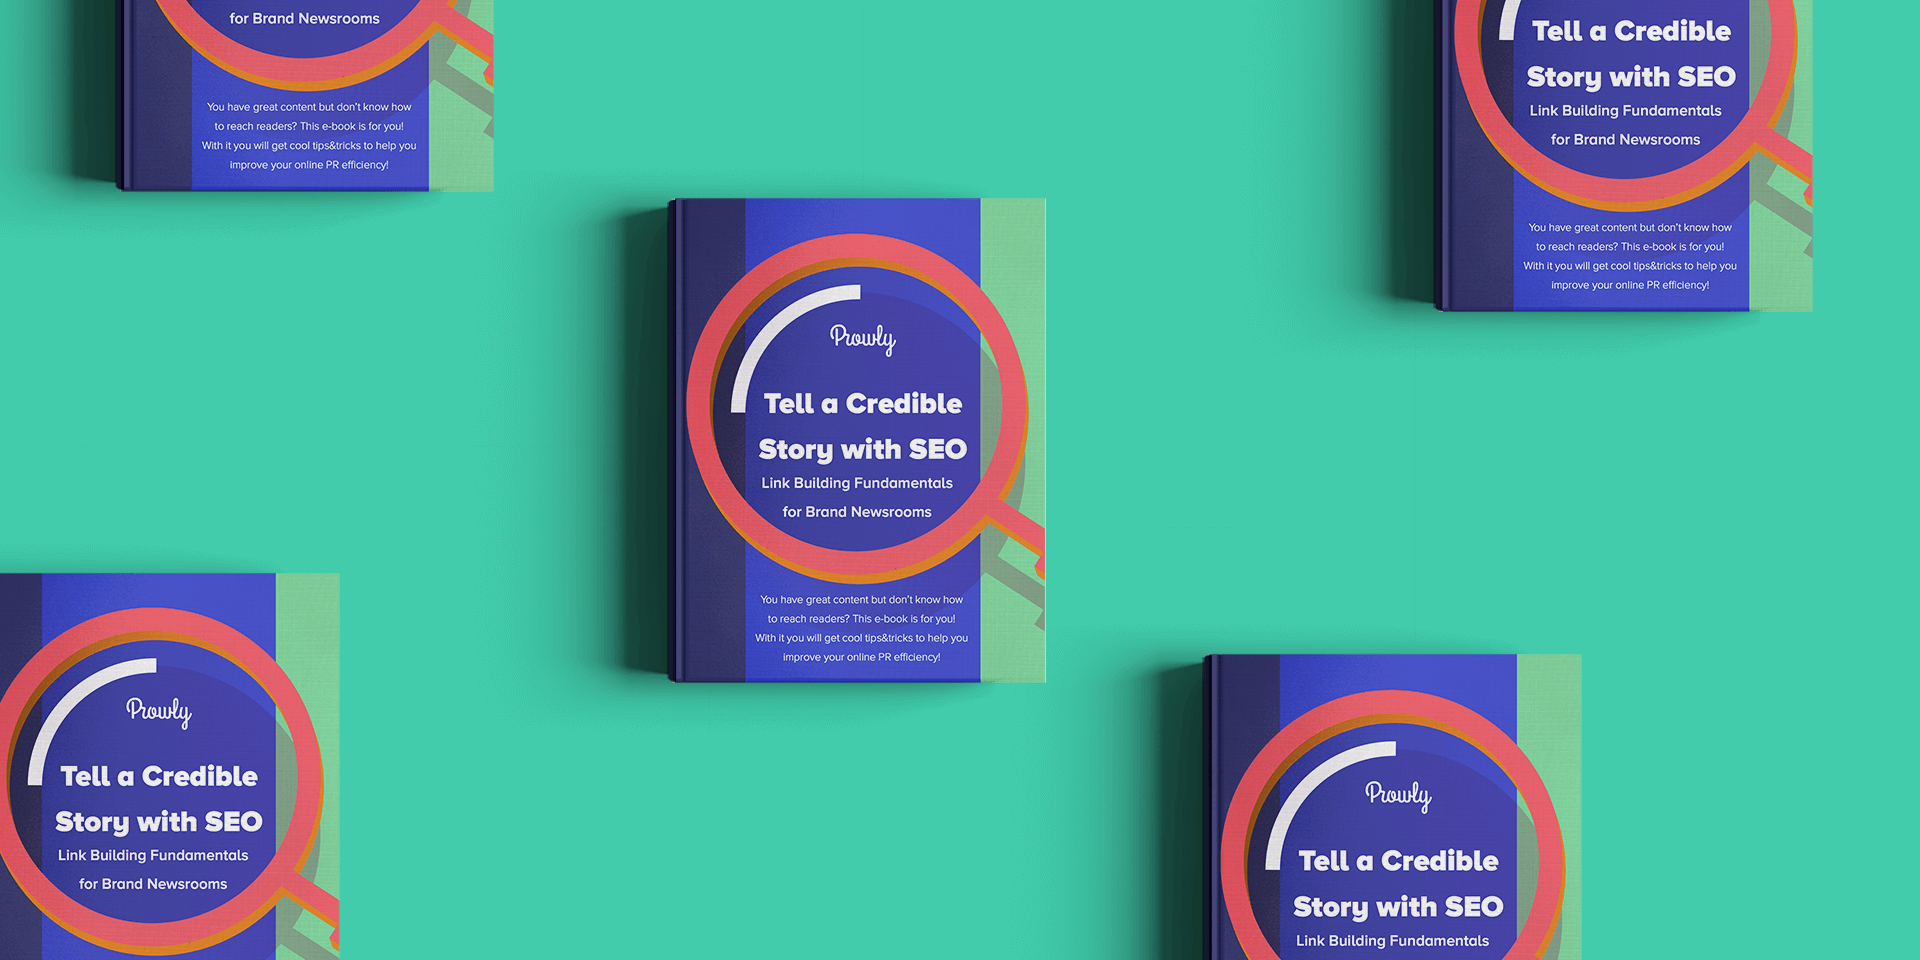 Link Building Fundamentals for Brand Journals - New Ebook from Prowly App